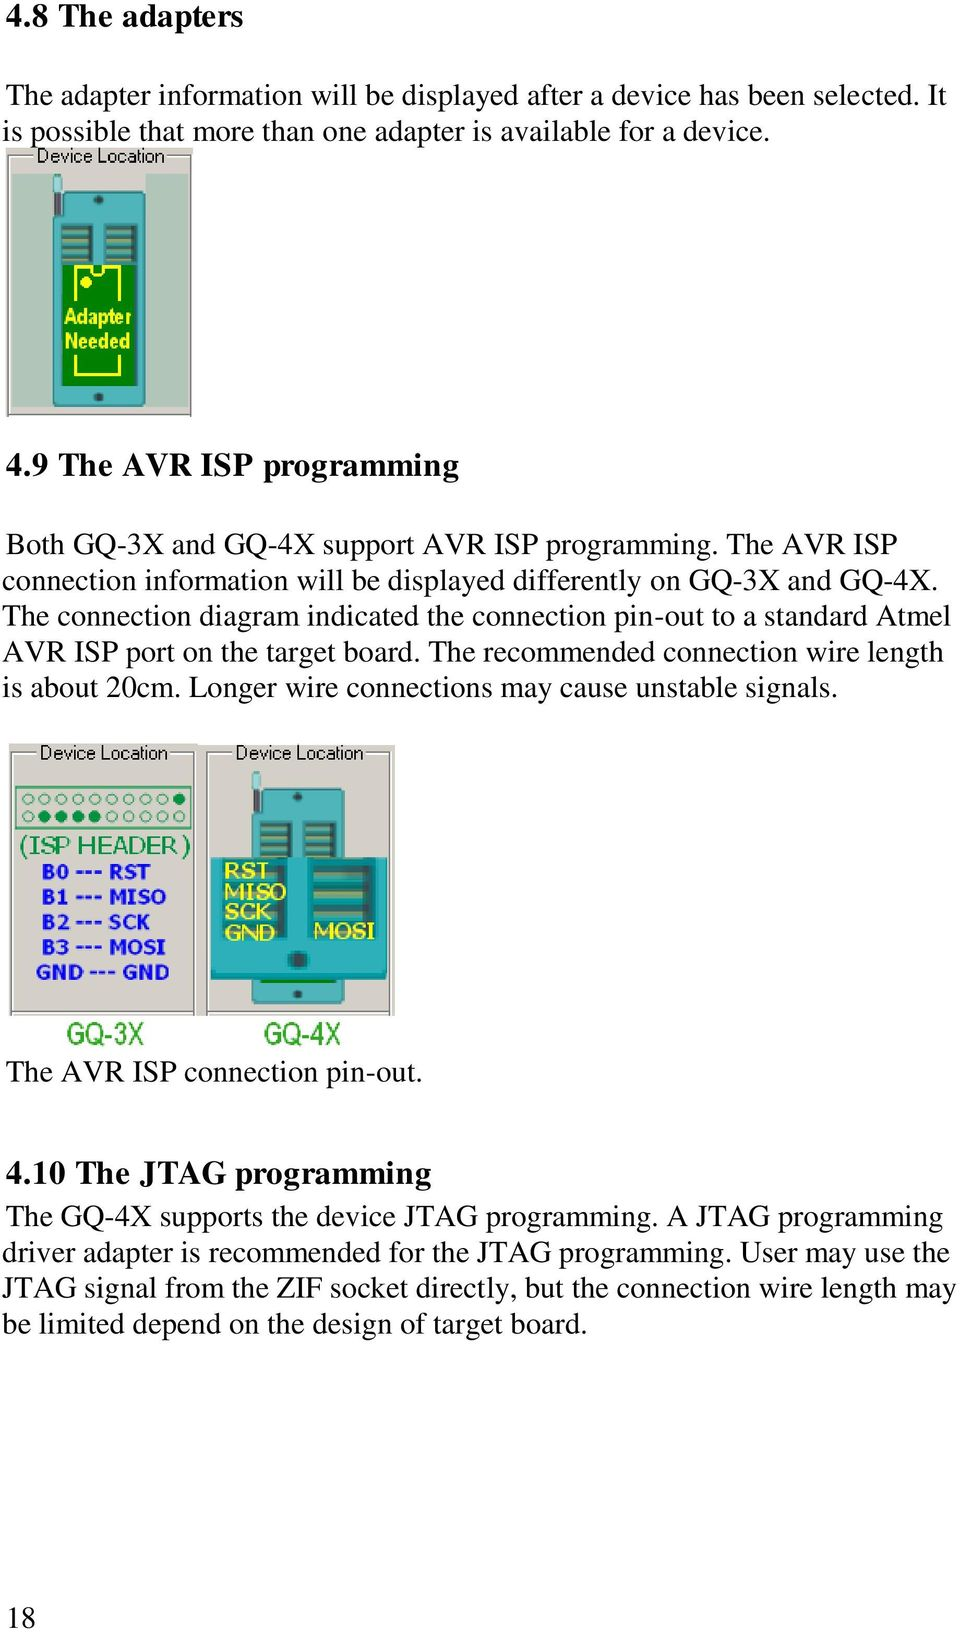 Gq Usb Universal Programmer User Guide Pdf Jtag Wiring Diagram The Connection Indicated Pin Out To A Standard Atmel Avr Isp Port